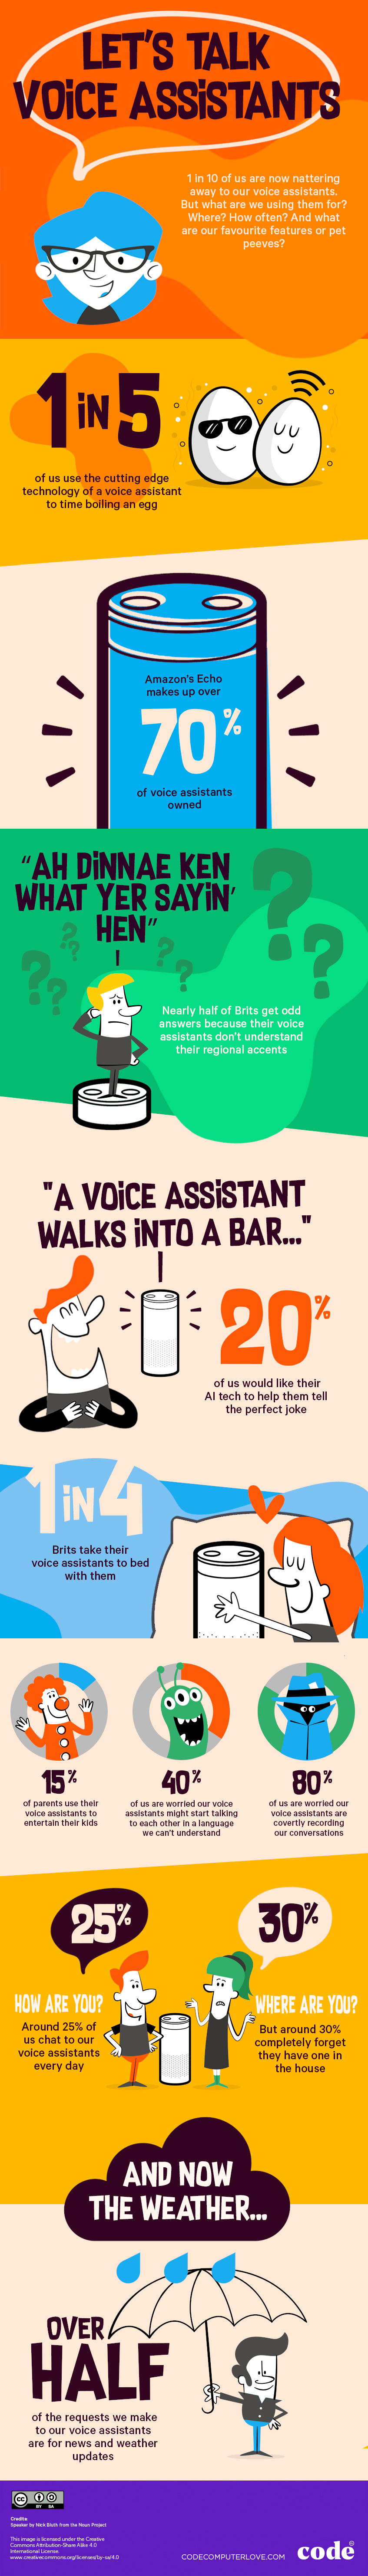 infographic on voice assistants